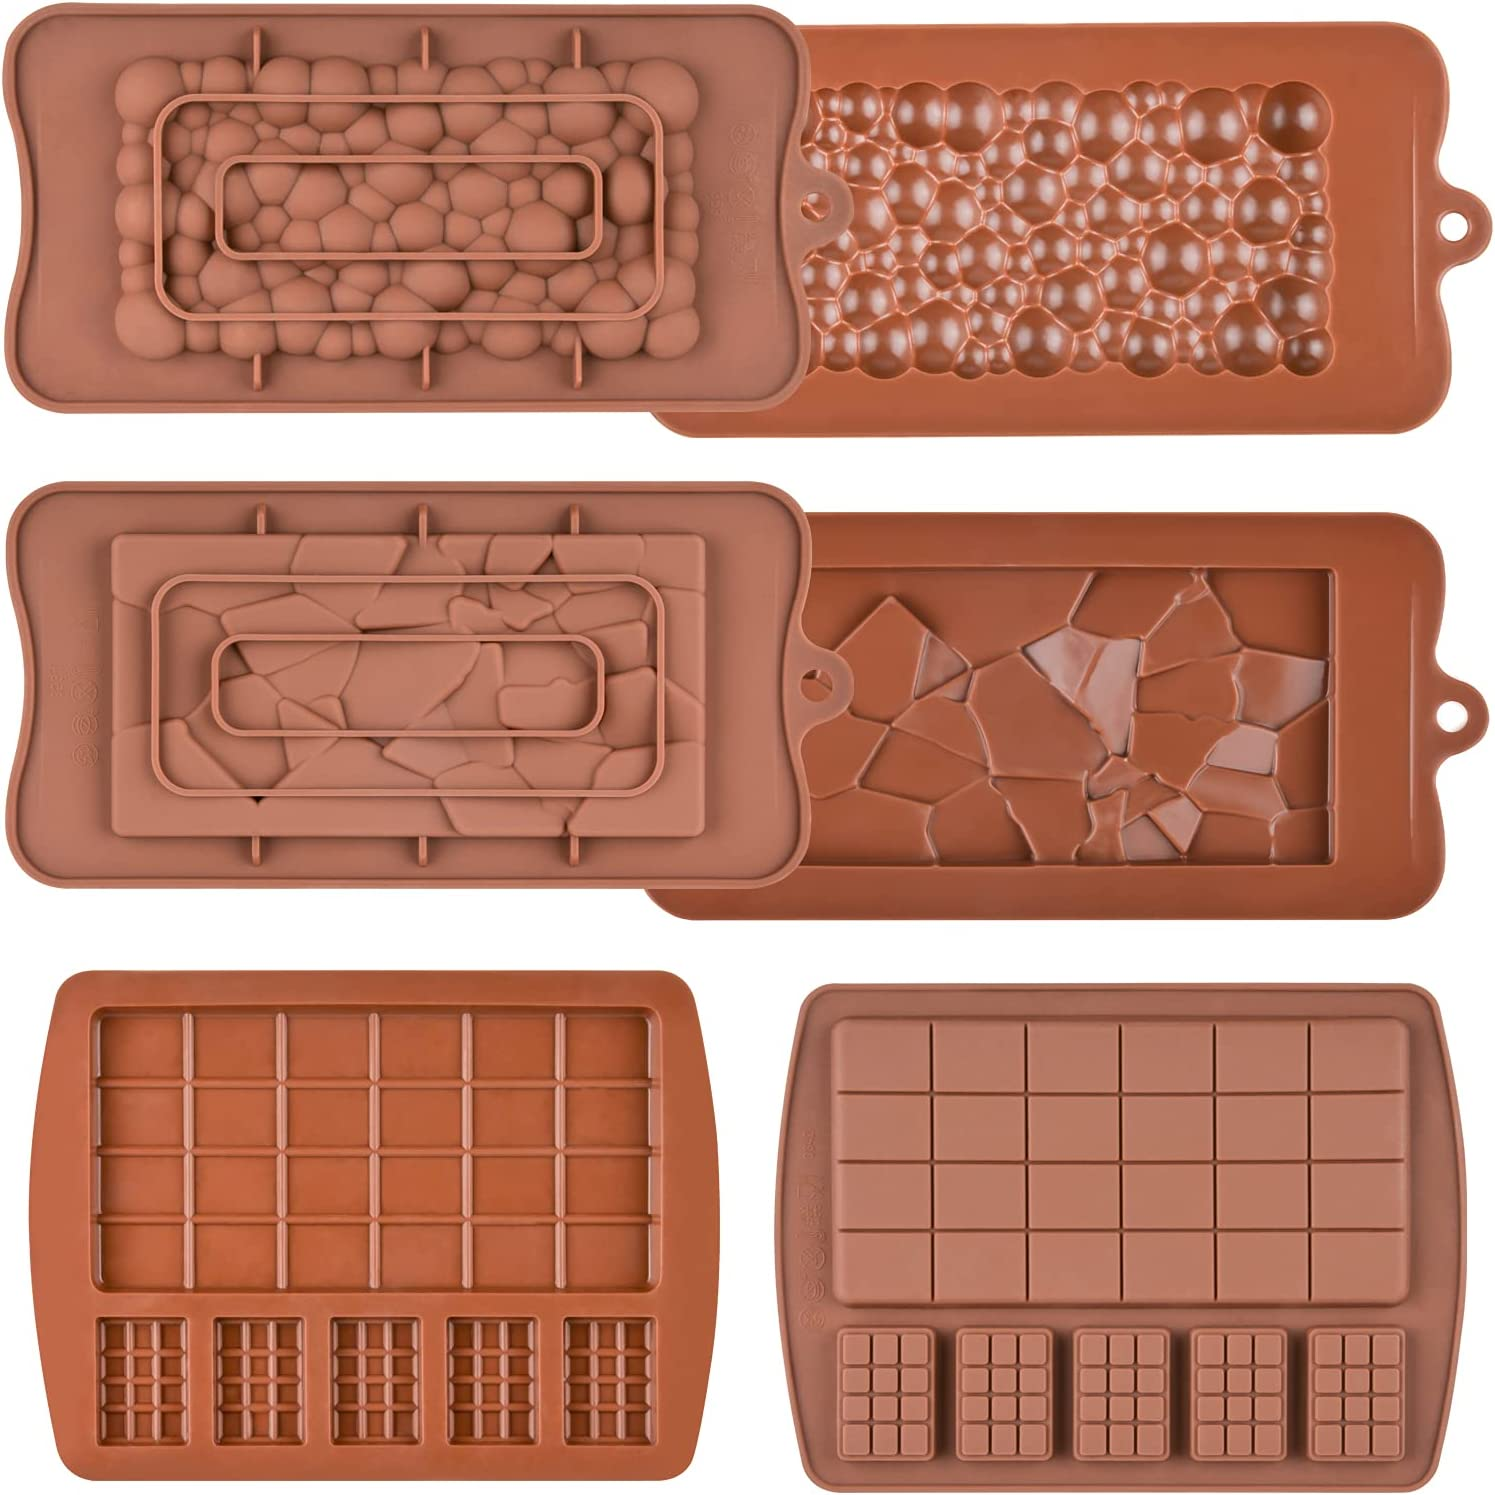 Fimary Chocolate Molds, Silicone Break Apart Candy Molds for Protein Energy Bar Candy Bar, Food Grade and Non Stick Silicone Molds for Baking, Pack of 6